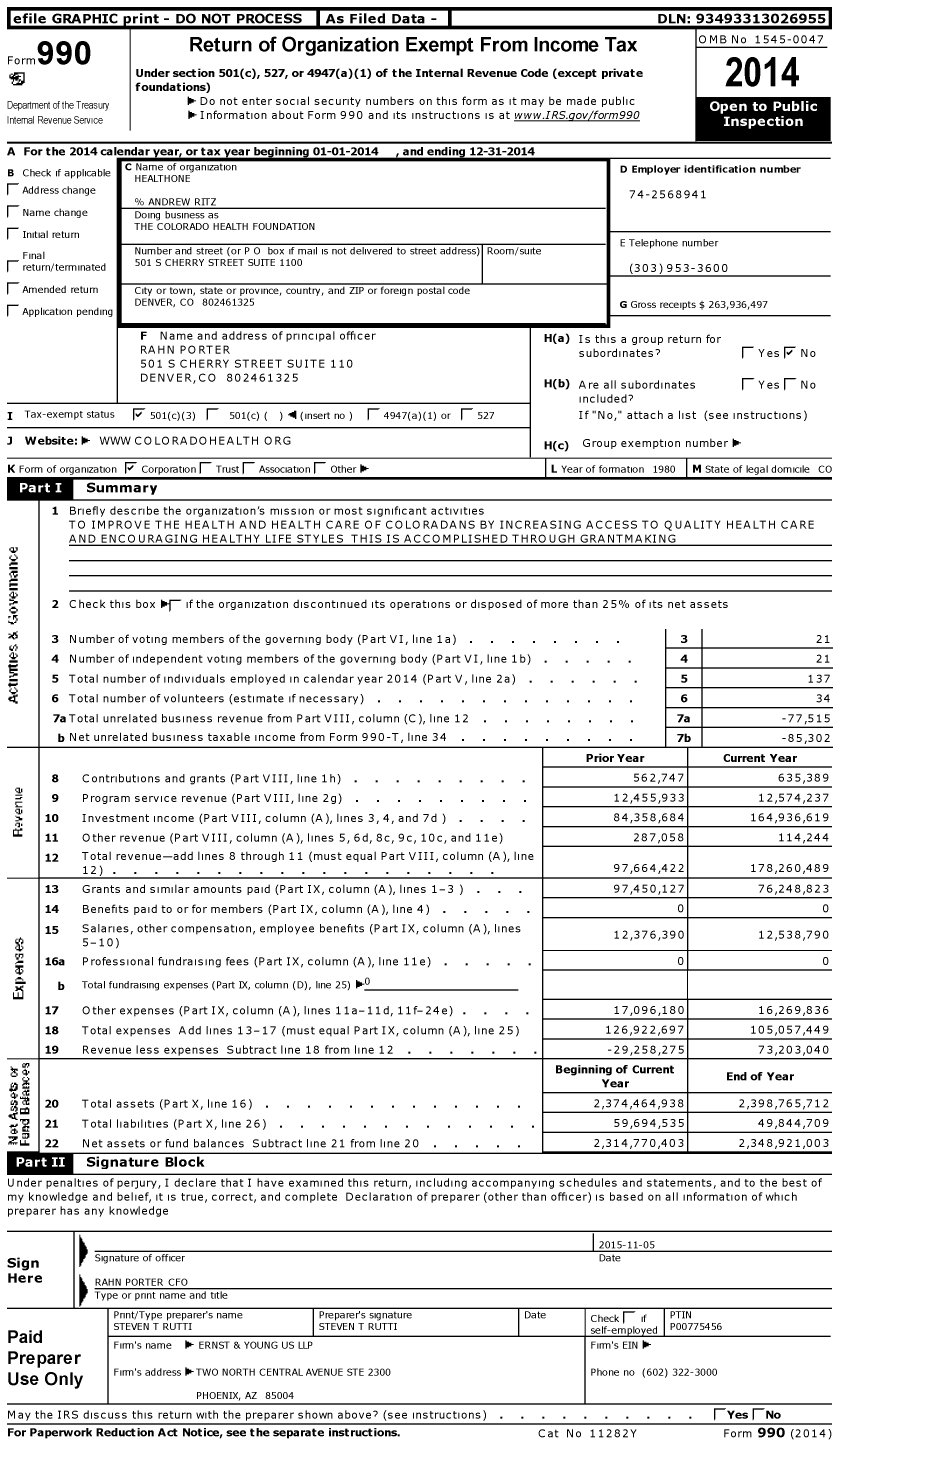 Image of first page of 2014 Form 990 for The Colorado Health Foundation